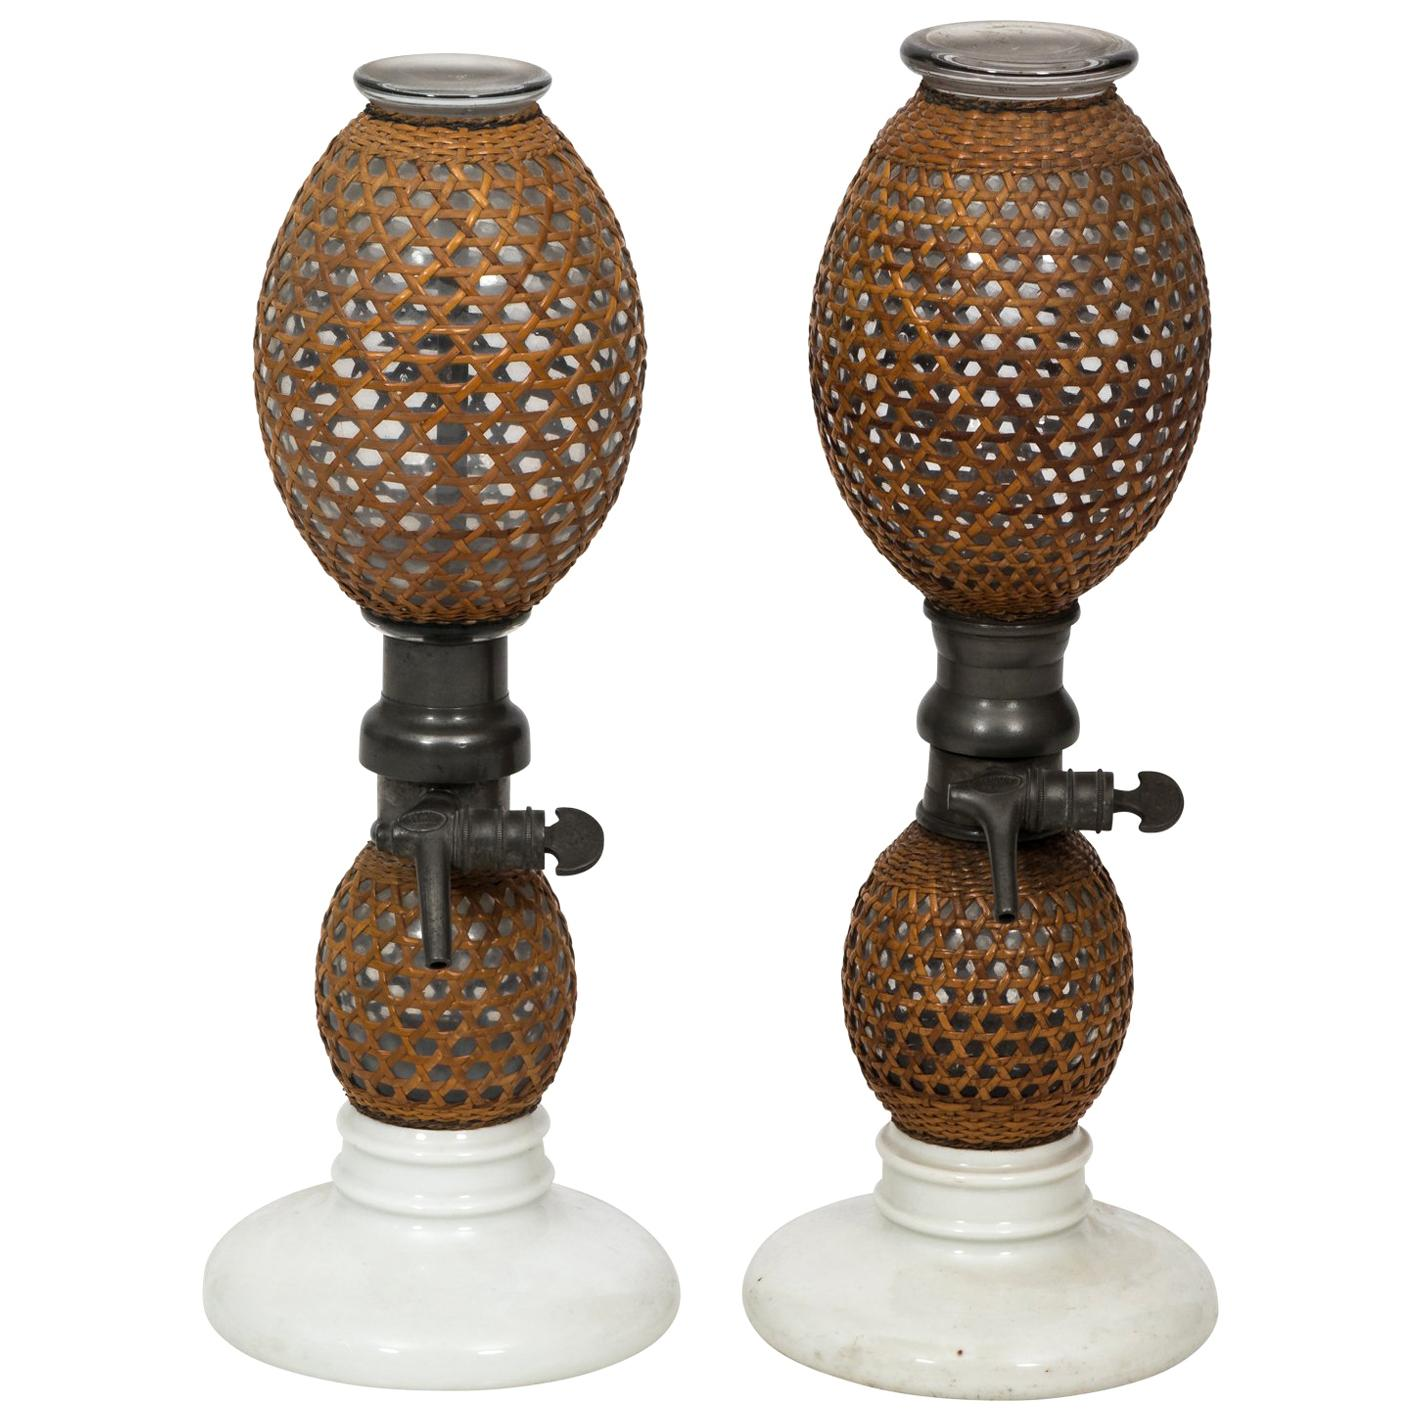 Pair of Early 1900s French Antique Seltzer Bottles